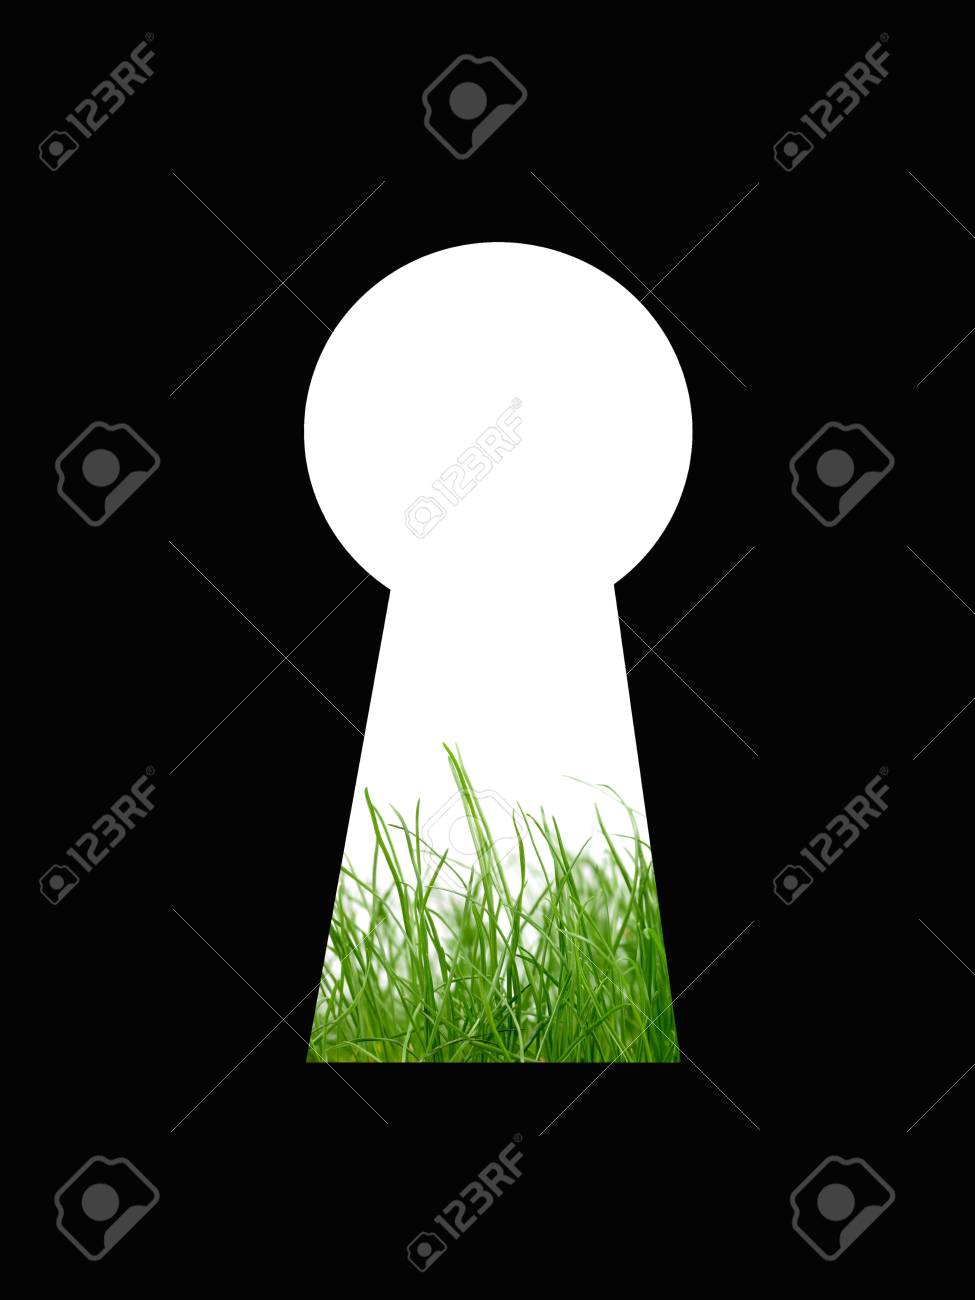 A keyhole isolated against a black background Stock Photo - 13422550